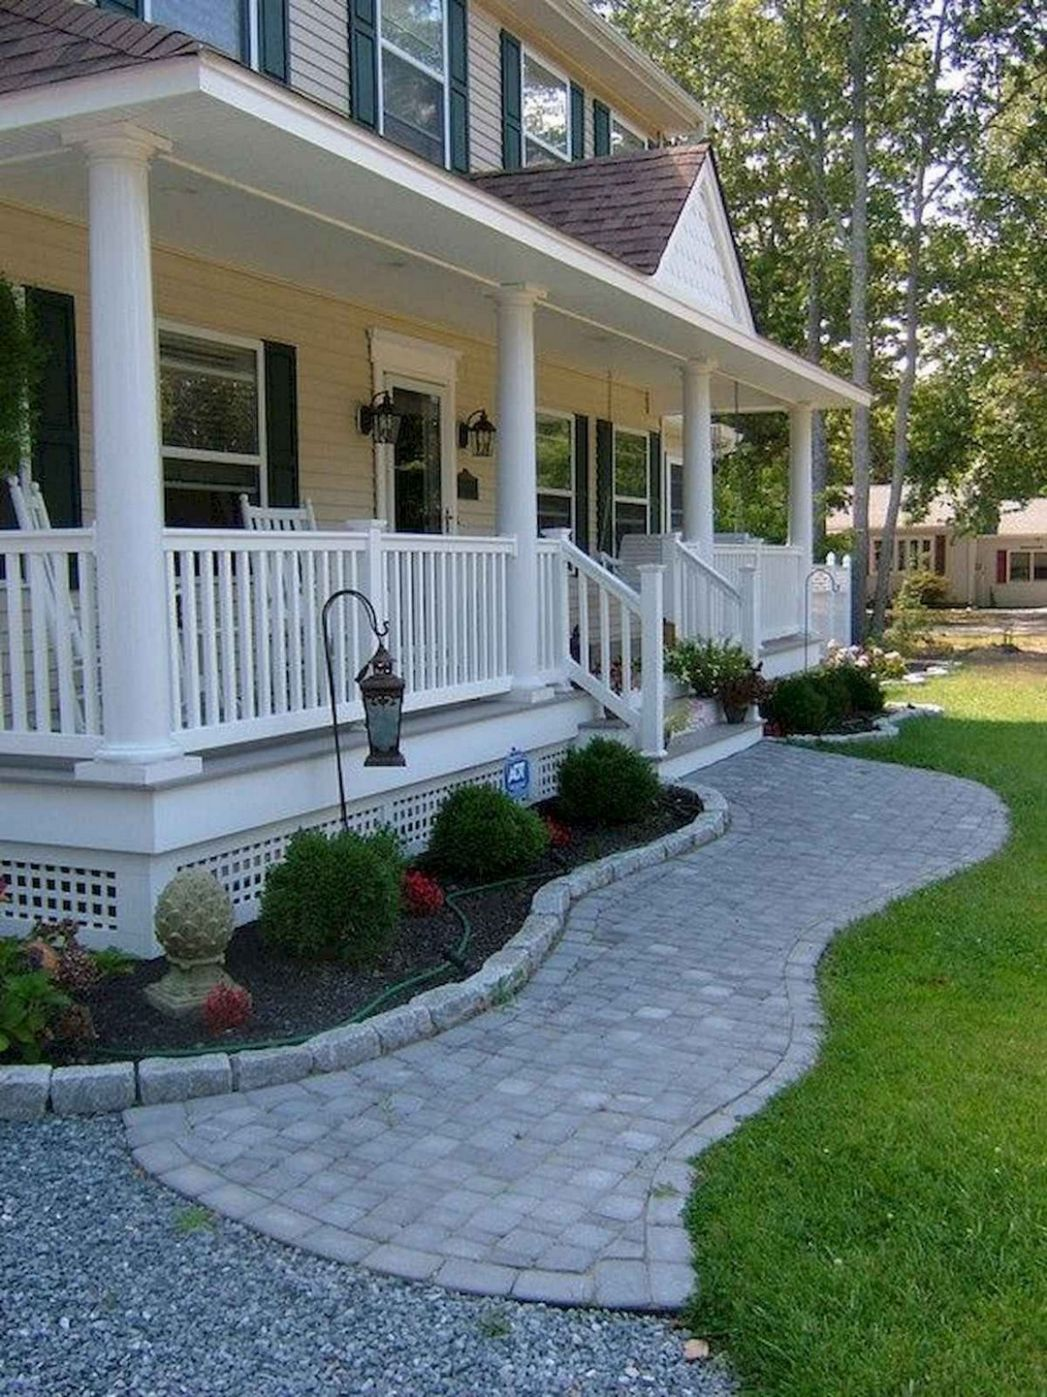 Porch Landscaping Ideas For Your Front Yard | Apartementdecor - front porch landscaping pictures